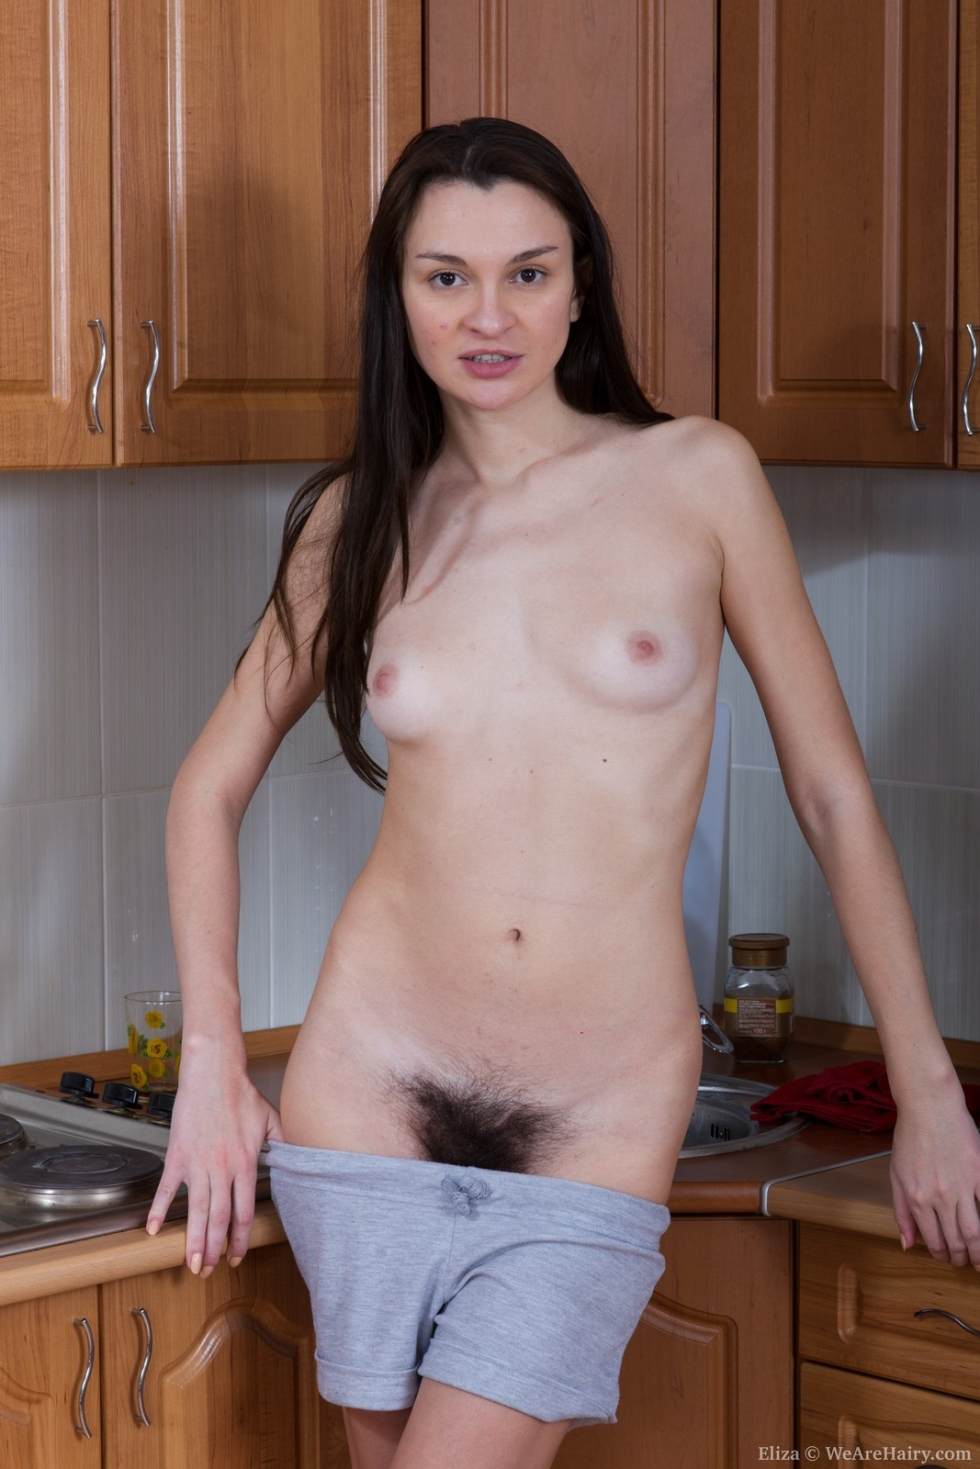 Her Hairy 31